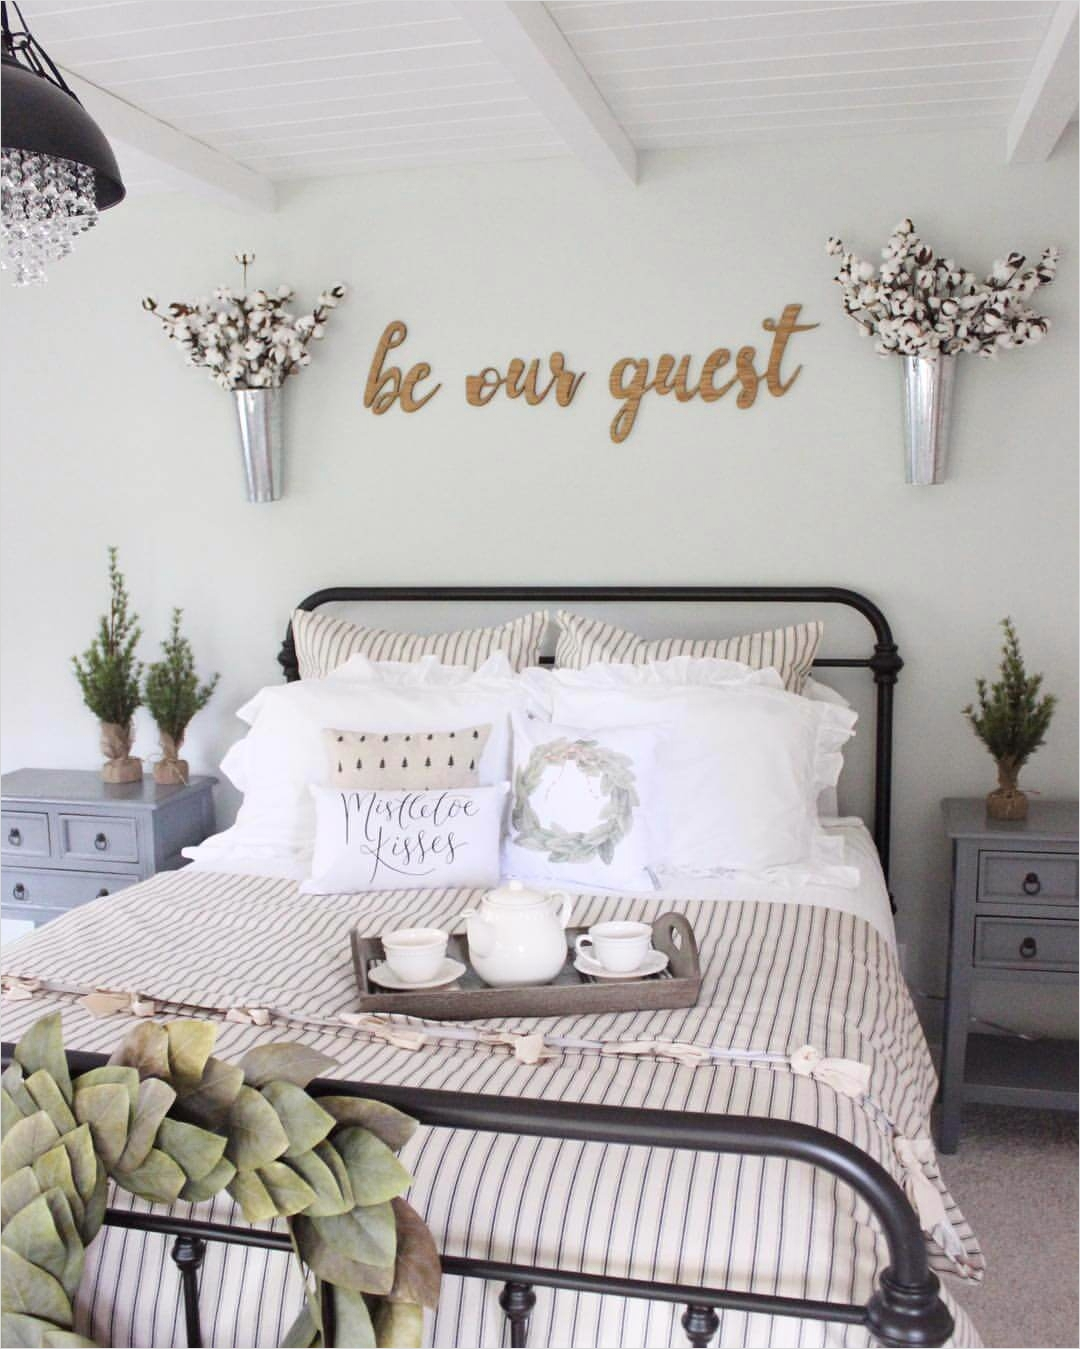 43 Stunning Country Farmhouse Bedroom Ideas 39 39 Best Farmhouse Bedroom Design and Decor Ideas for 2018 2